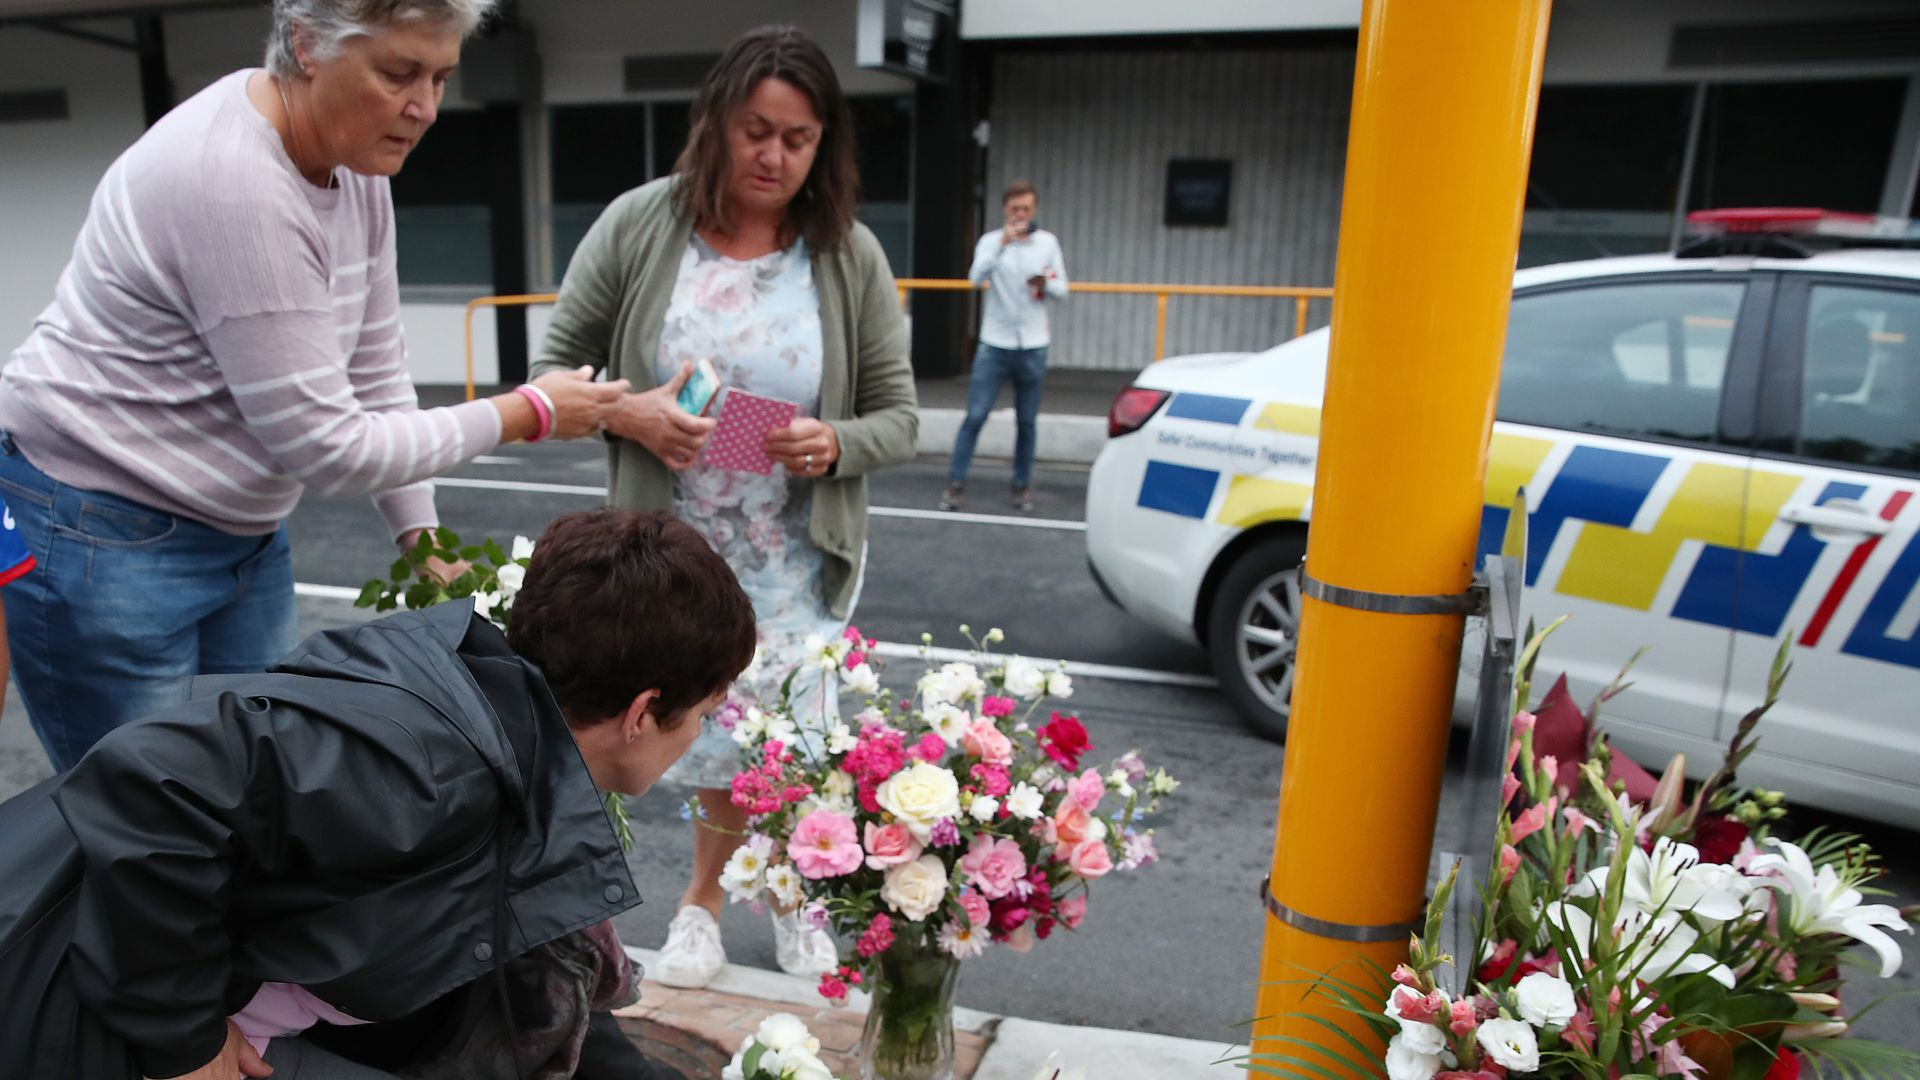 People dropping off flowers in solidarity with mosques in New Zealand.